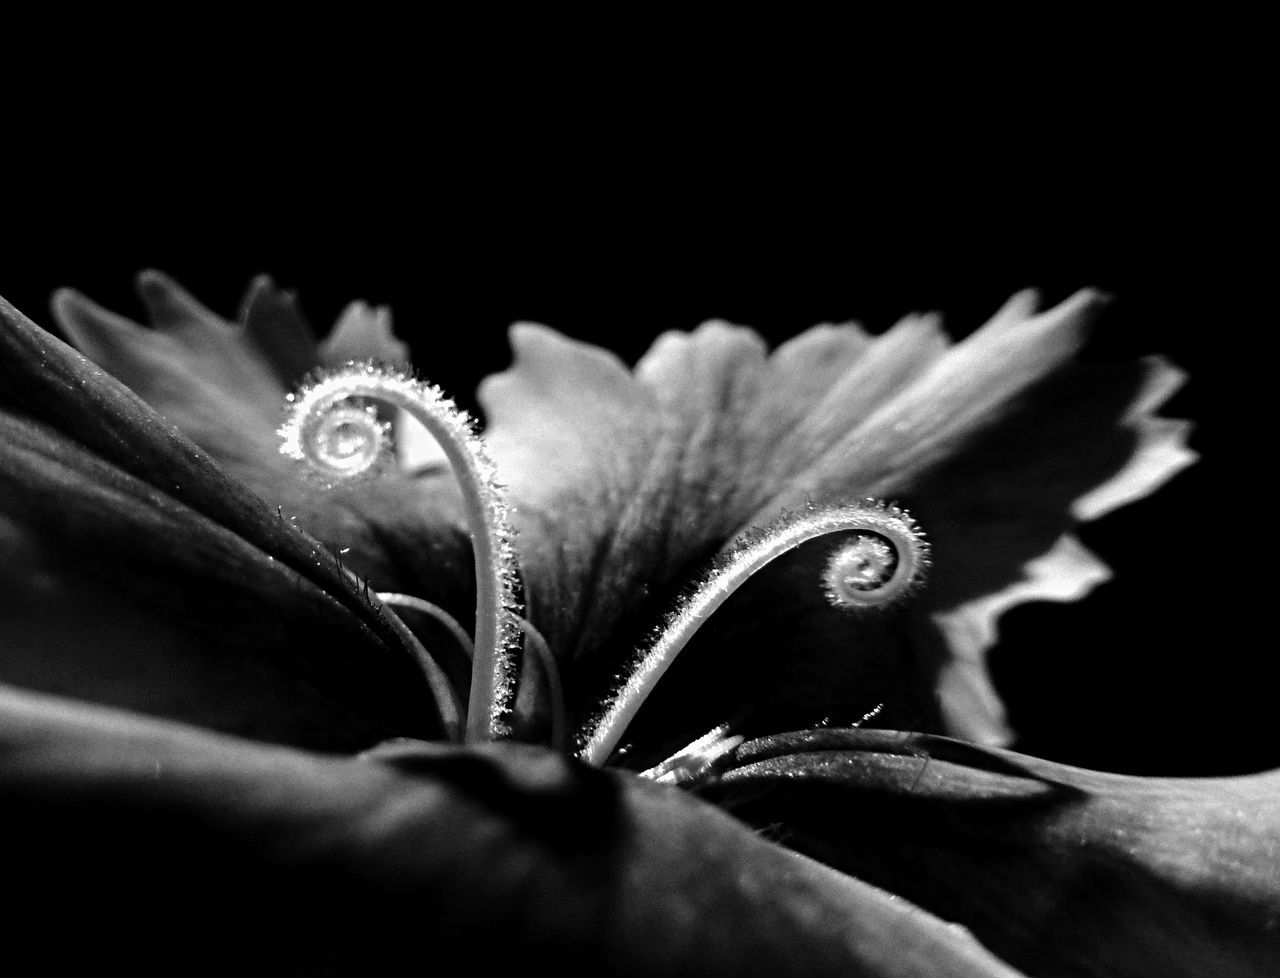 This is a story of light, darkness, and a dianthus flower in Summer 2017 Art Art Is Everywhere ArtWork Beauty In Nature Black Background Close-up EyeEm Black&white! EyeEm New Here Floral Flower Flower Head Freshness Holding Live For The Story Lowlight Macro Nature Petal